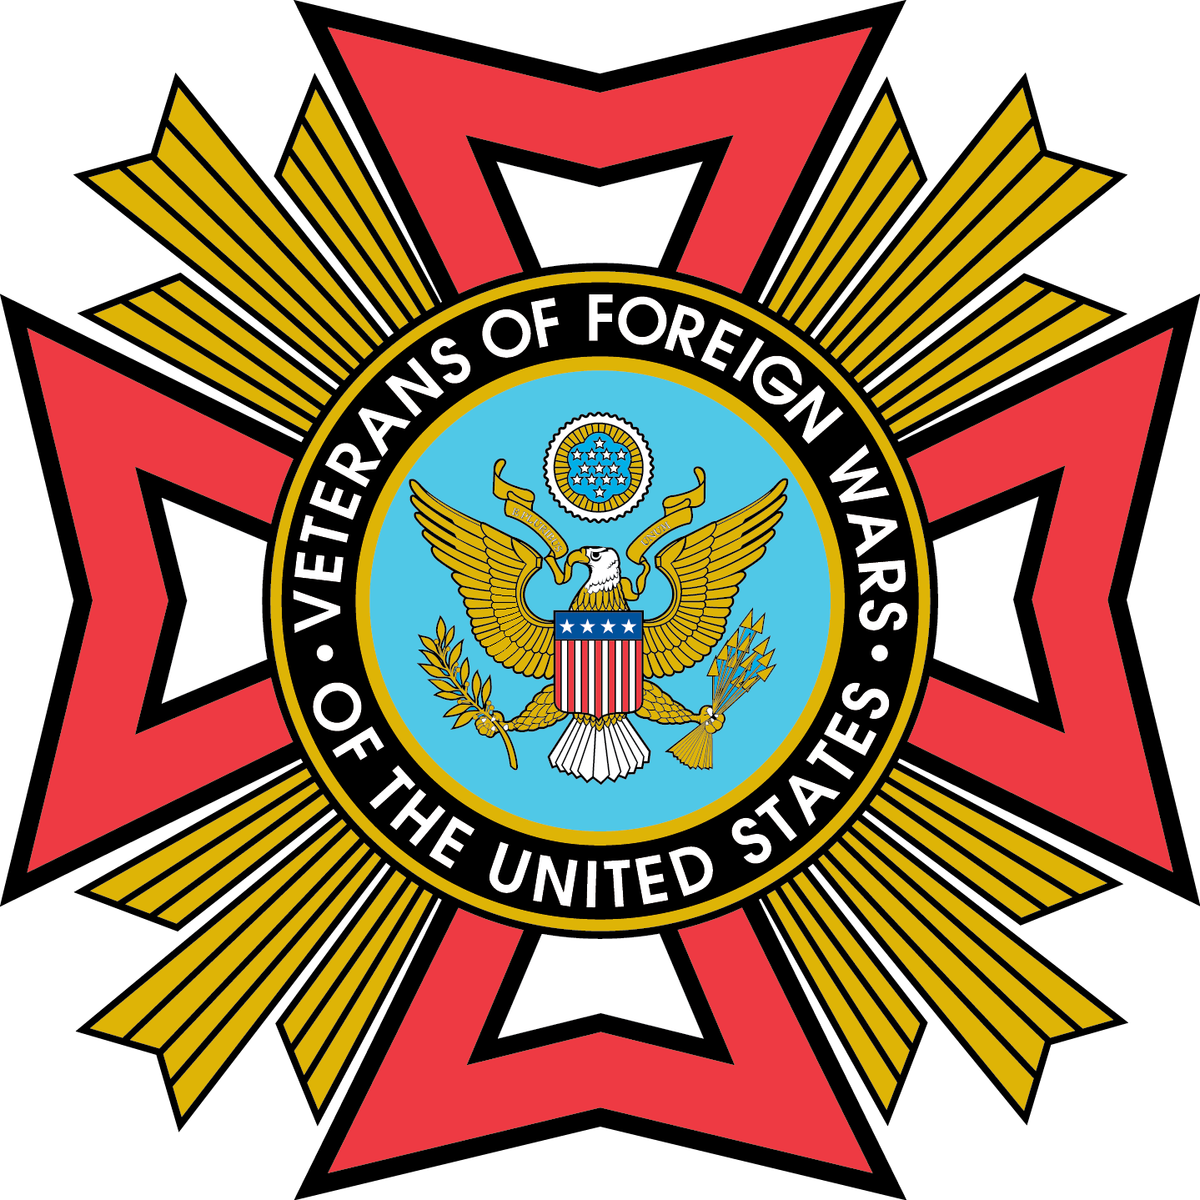 Vfw Logo Png - High Resolution Vfw Logo Clipart (1200x1200), Png Download